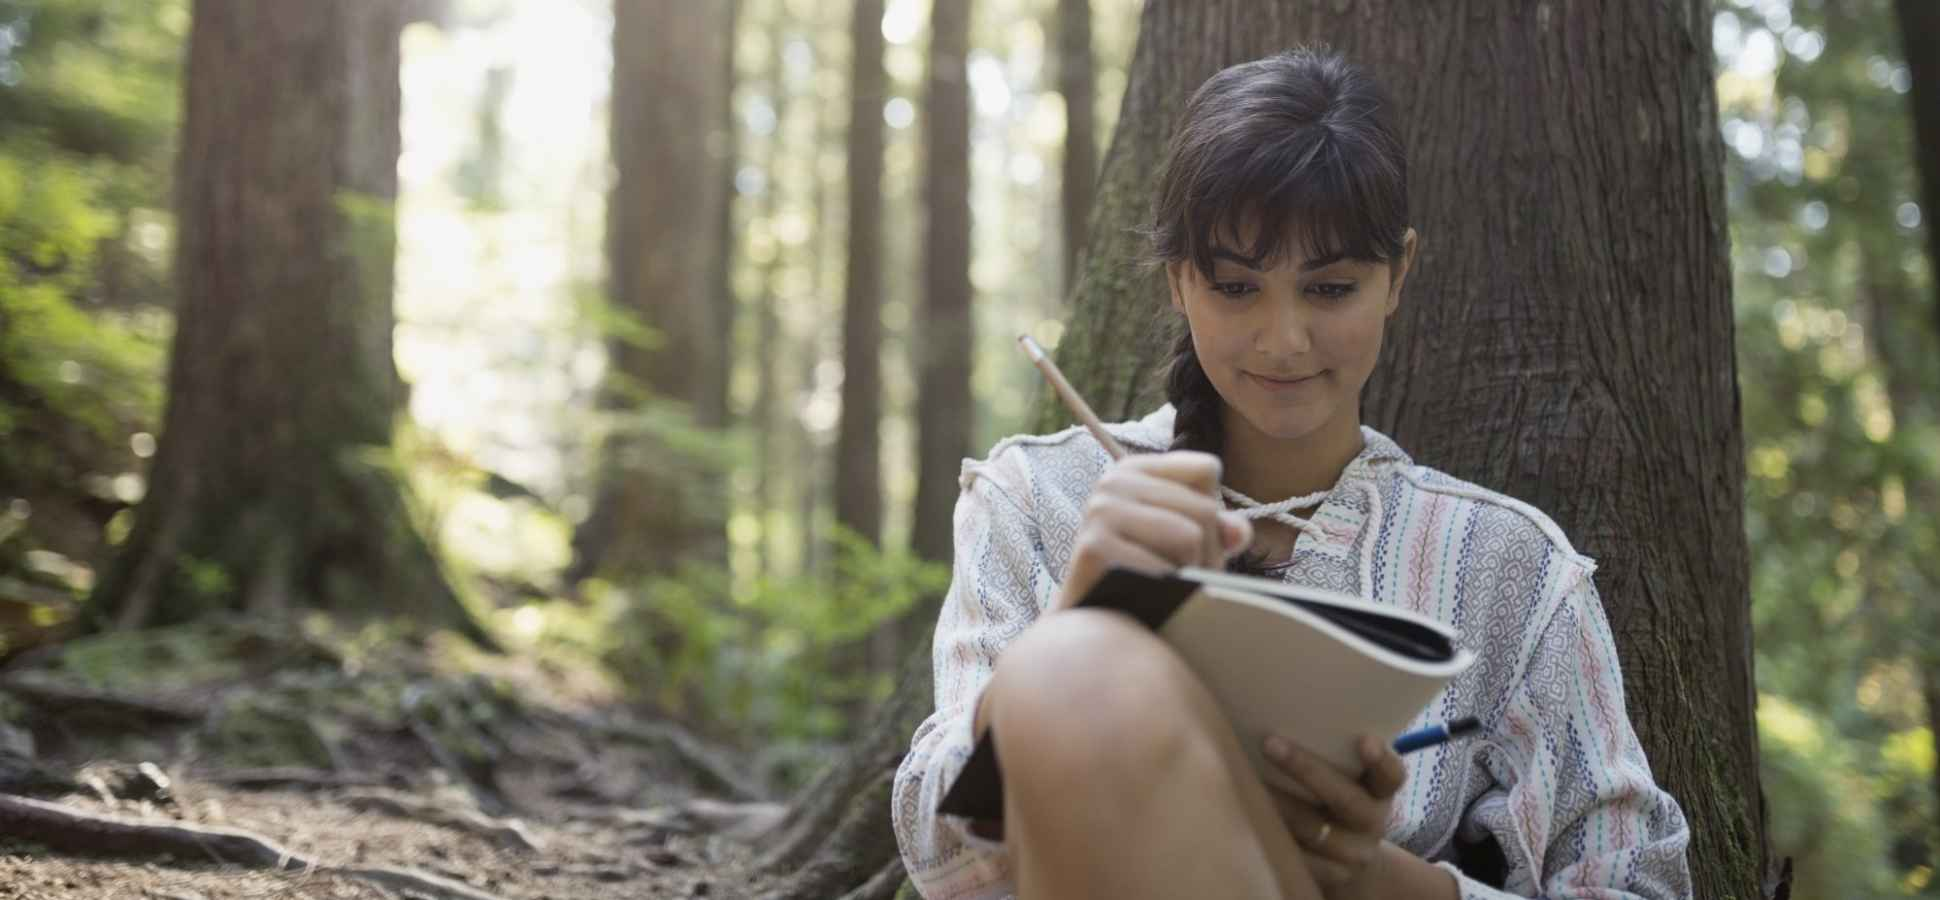 This Morning Writing Exercise Can Make You Happier and More Creative